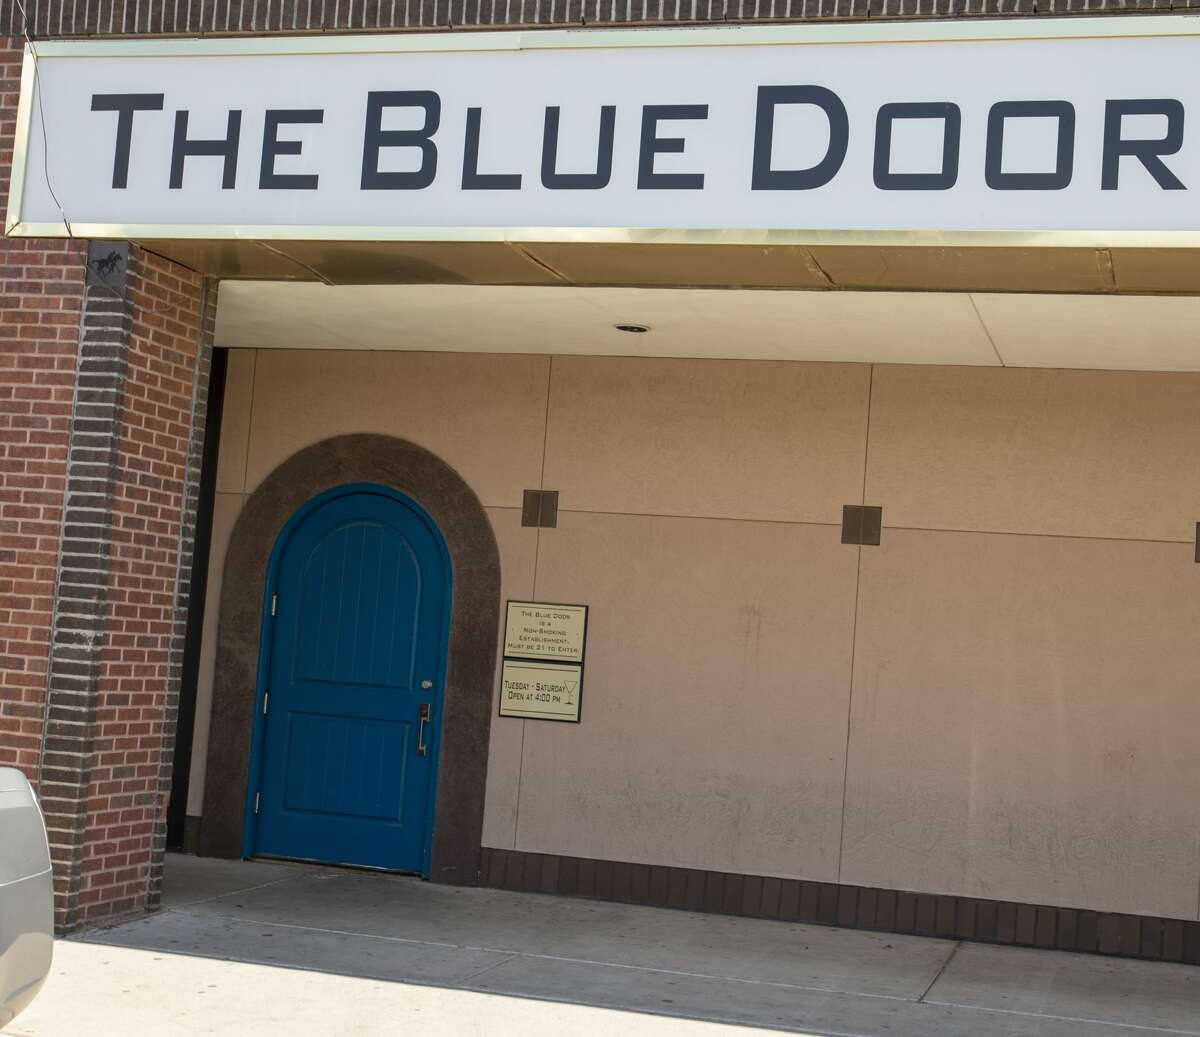 Wednesdays are girls' night out with $5 special cocktails at The Blue Door.